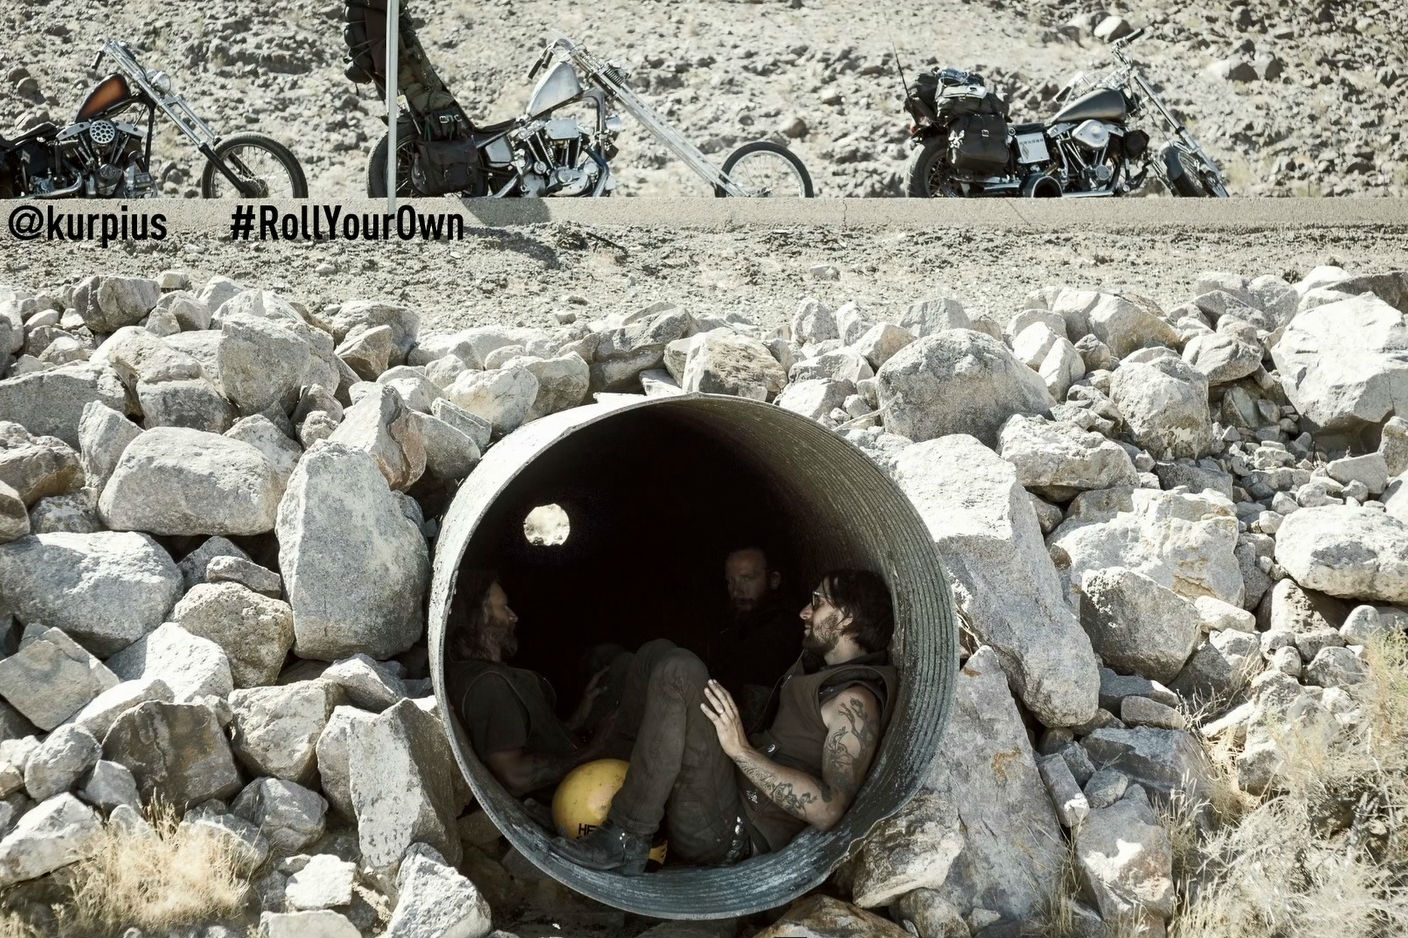 Caption that: We're hiding under here because we saw some bad-ass bikers. Have they gone?